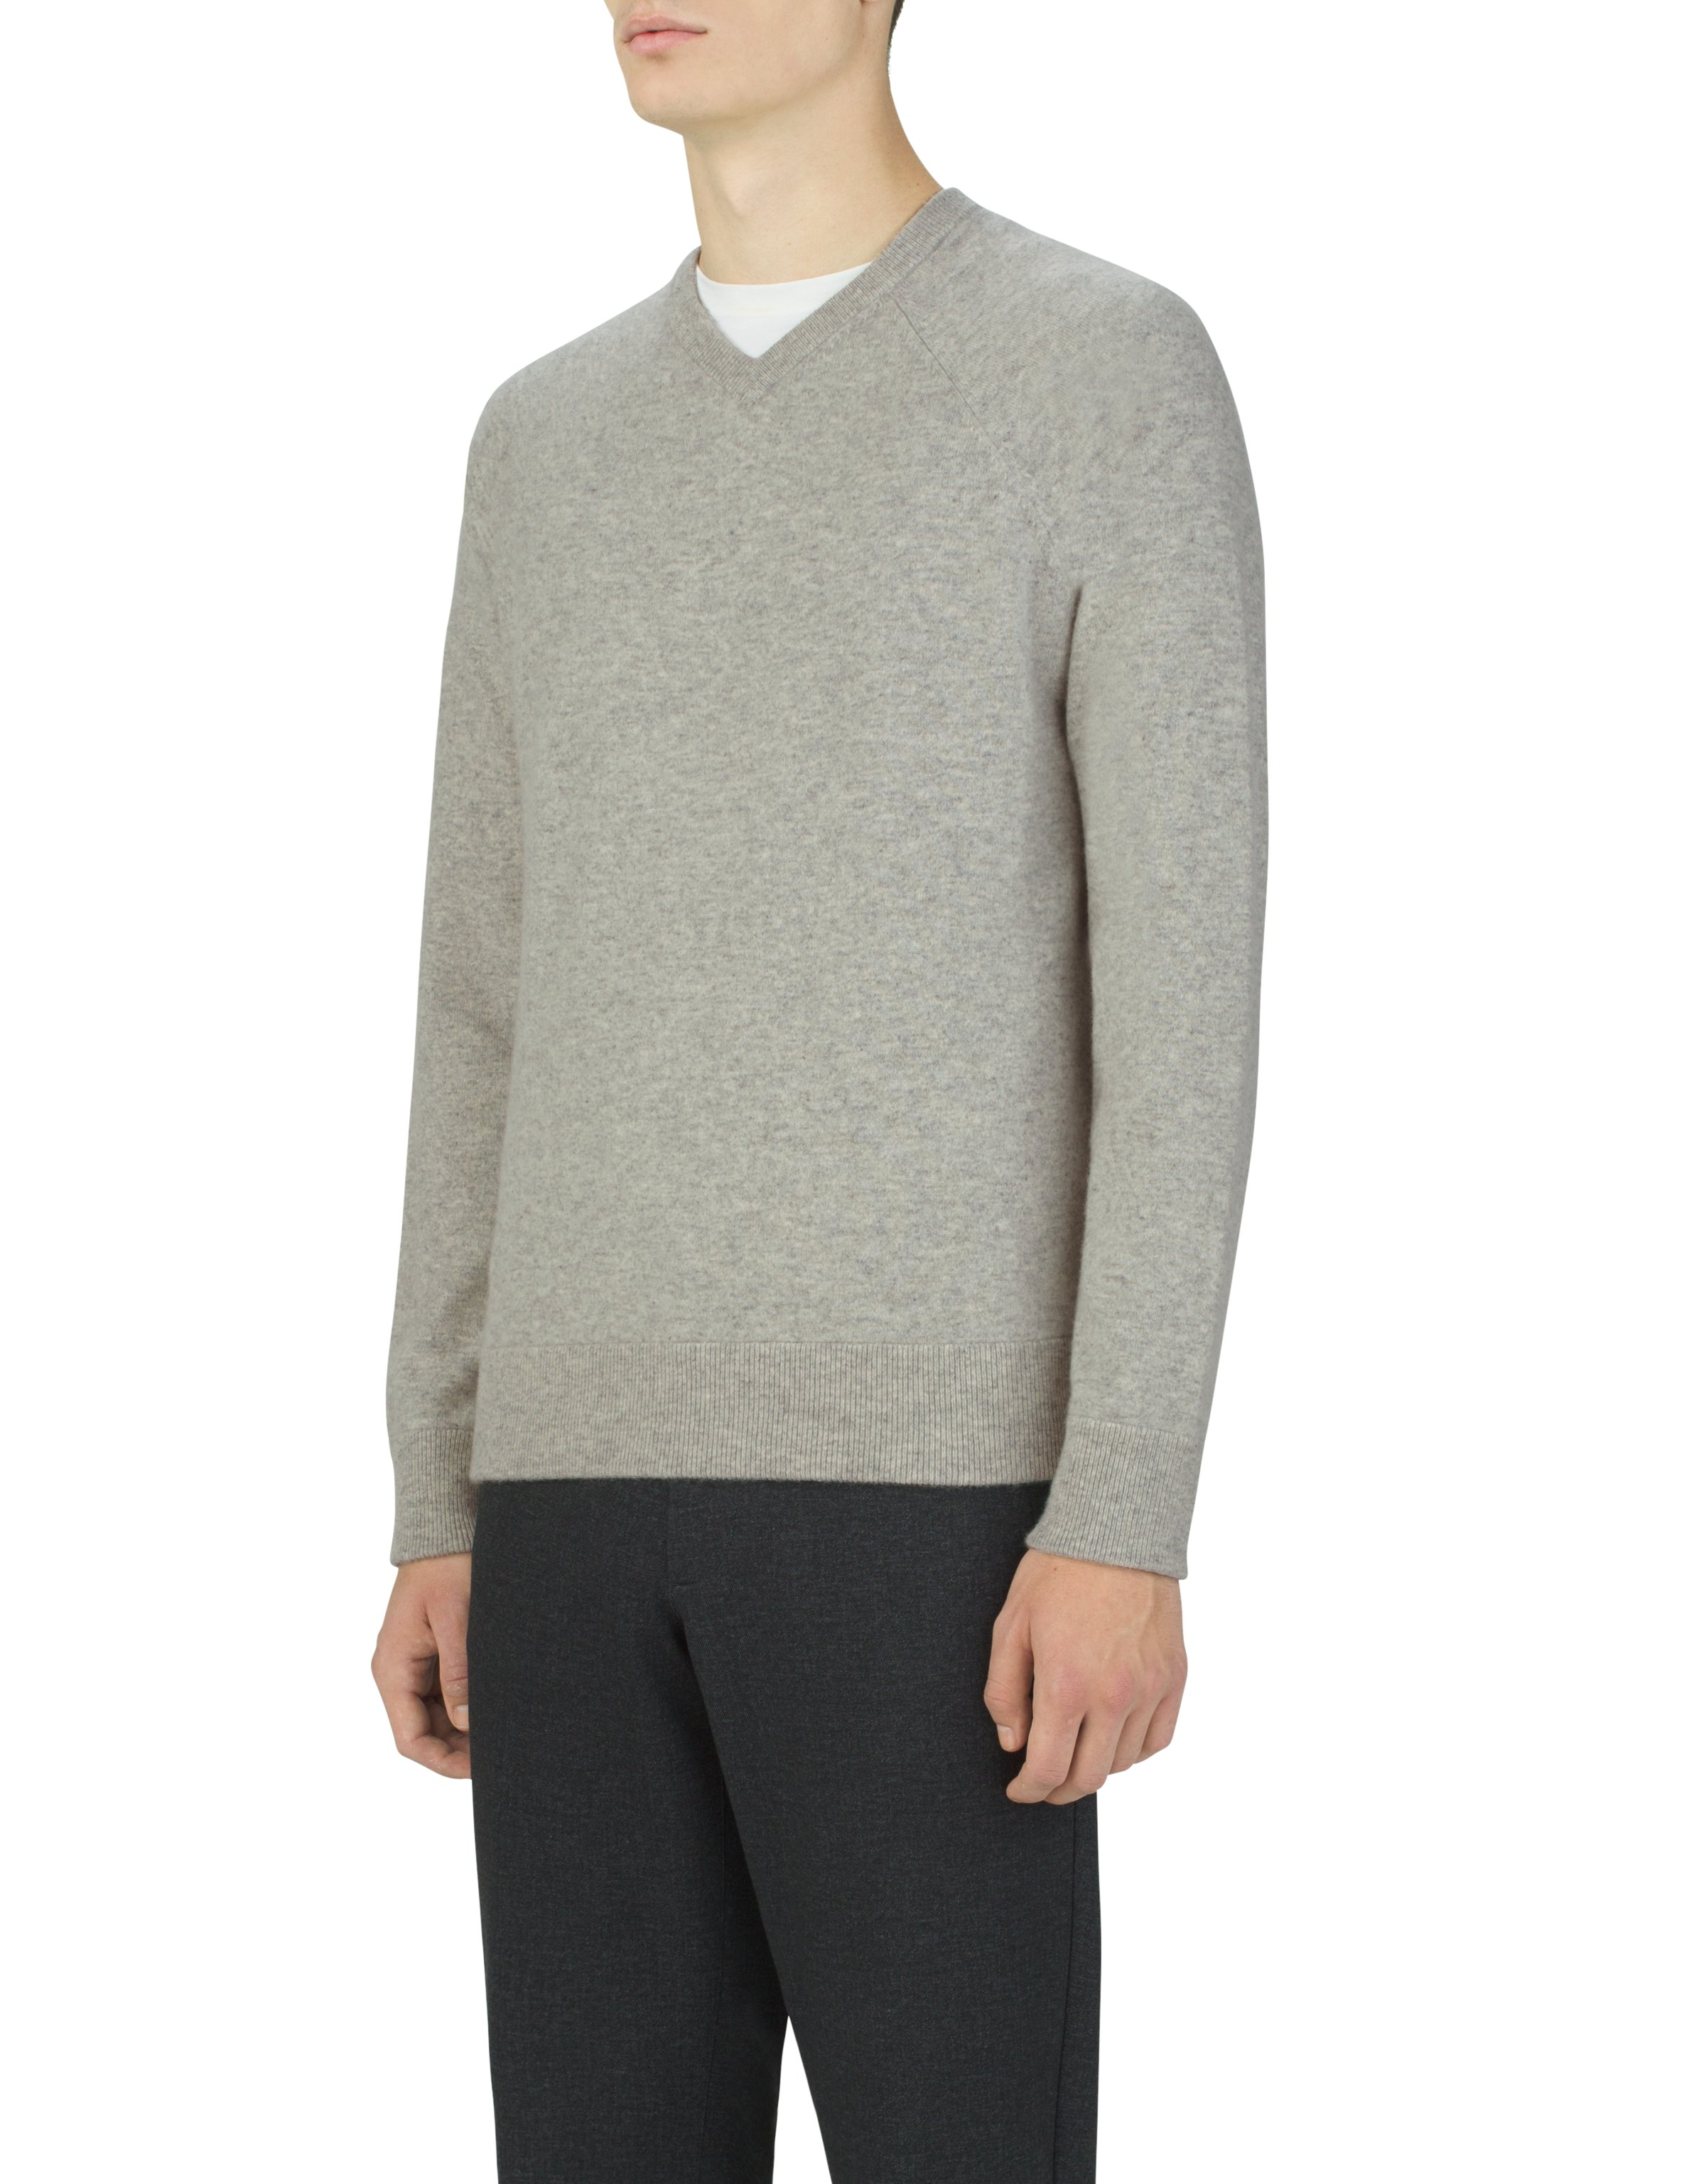 Men's UAS Gridknit Cashmere V-Neck Sweater, LIGHT HEATHER GRAY, zoomed image